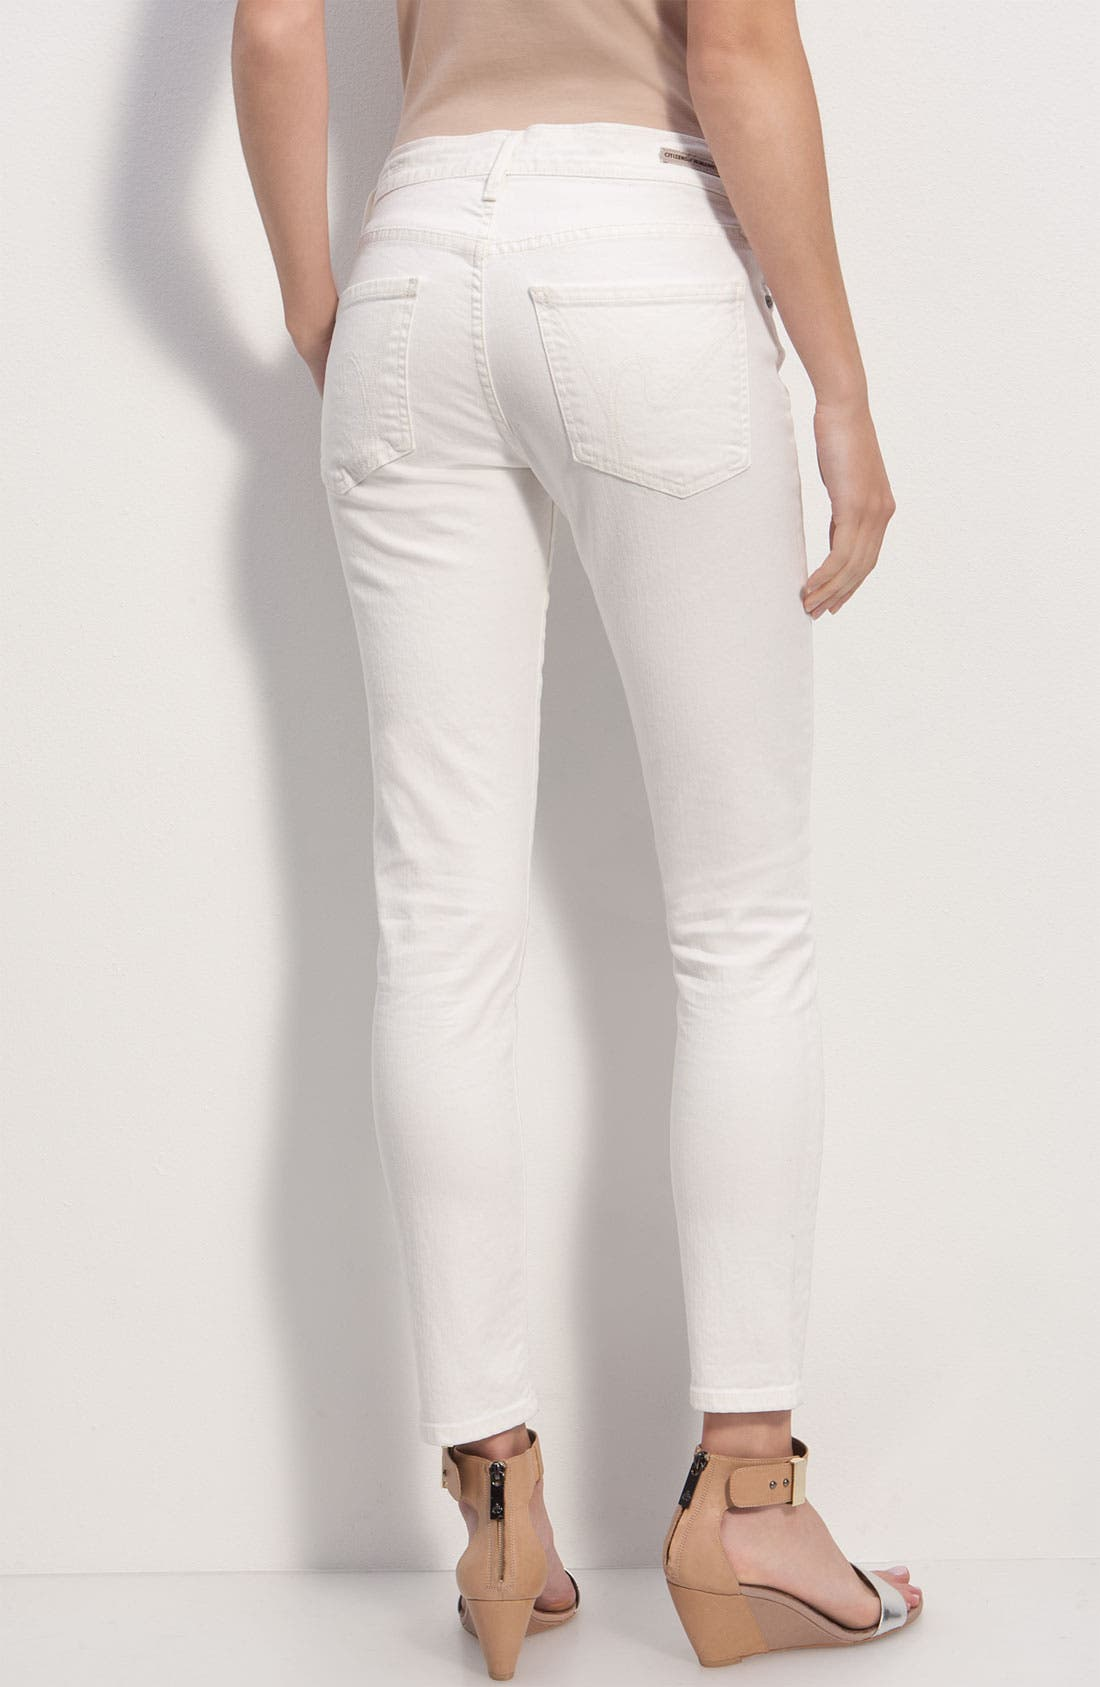 CITIZENS OF HUMANITY 'Thompson' Crop Skinny Jeans, Main, color, 900